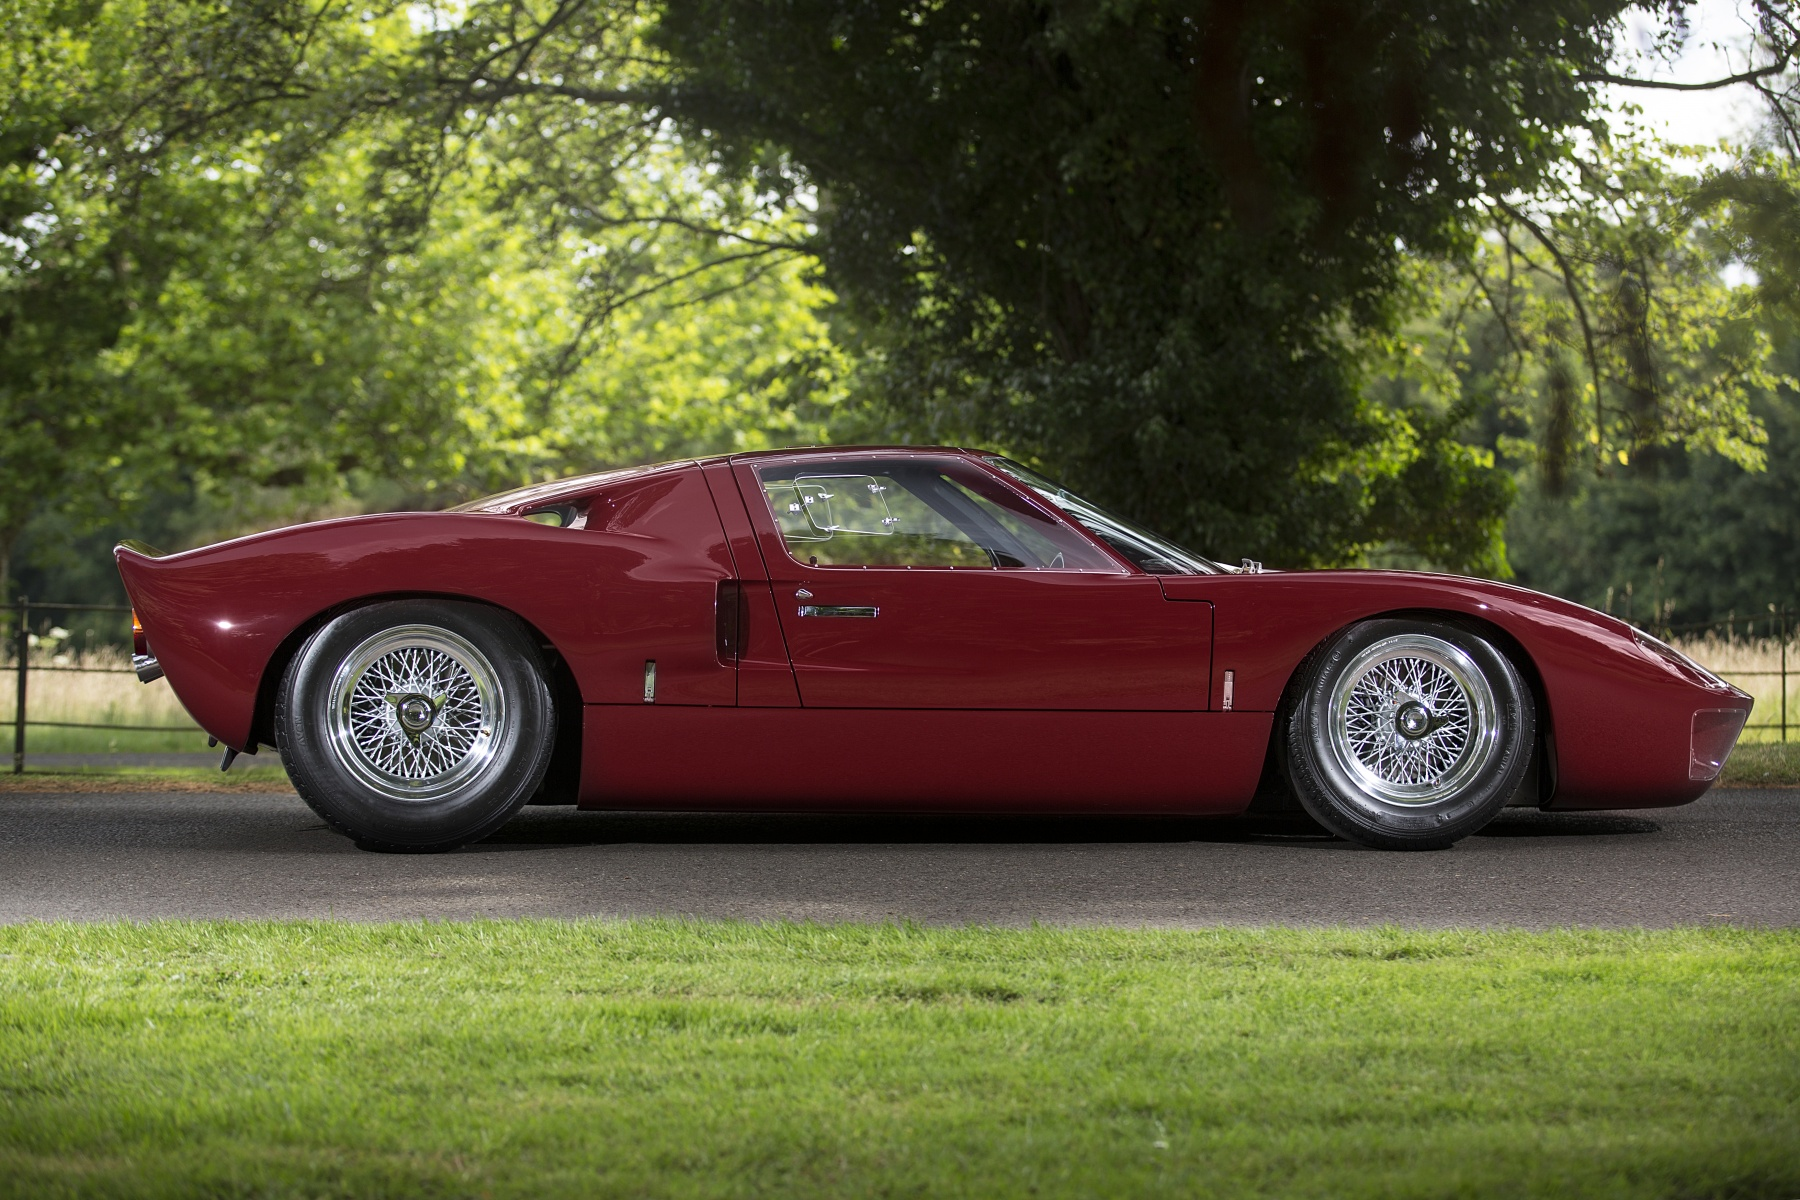 1966 Ford GT40 MK1 For Sale - Exotic Car List